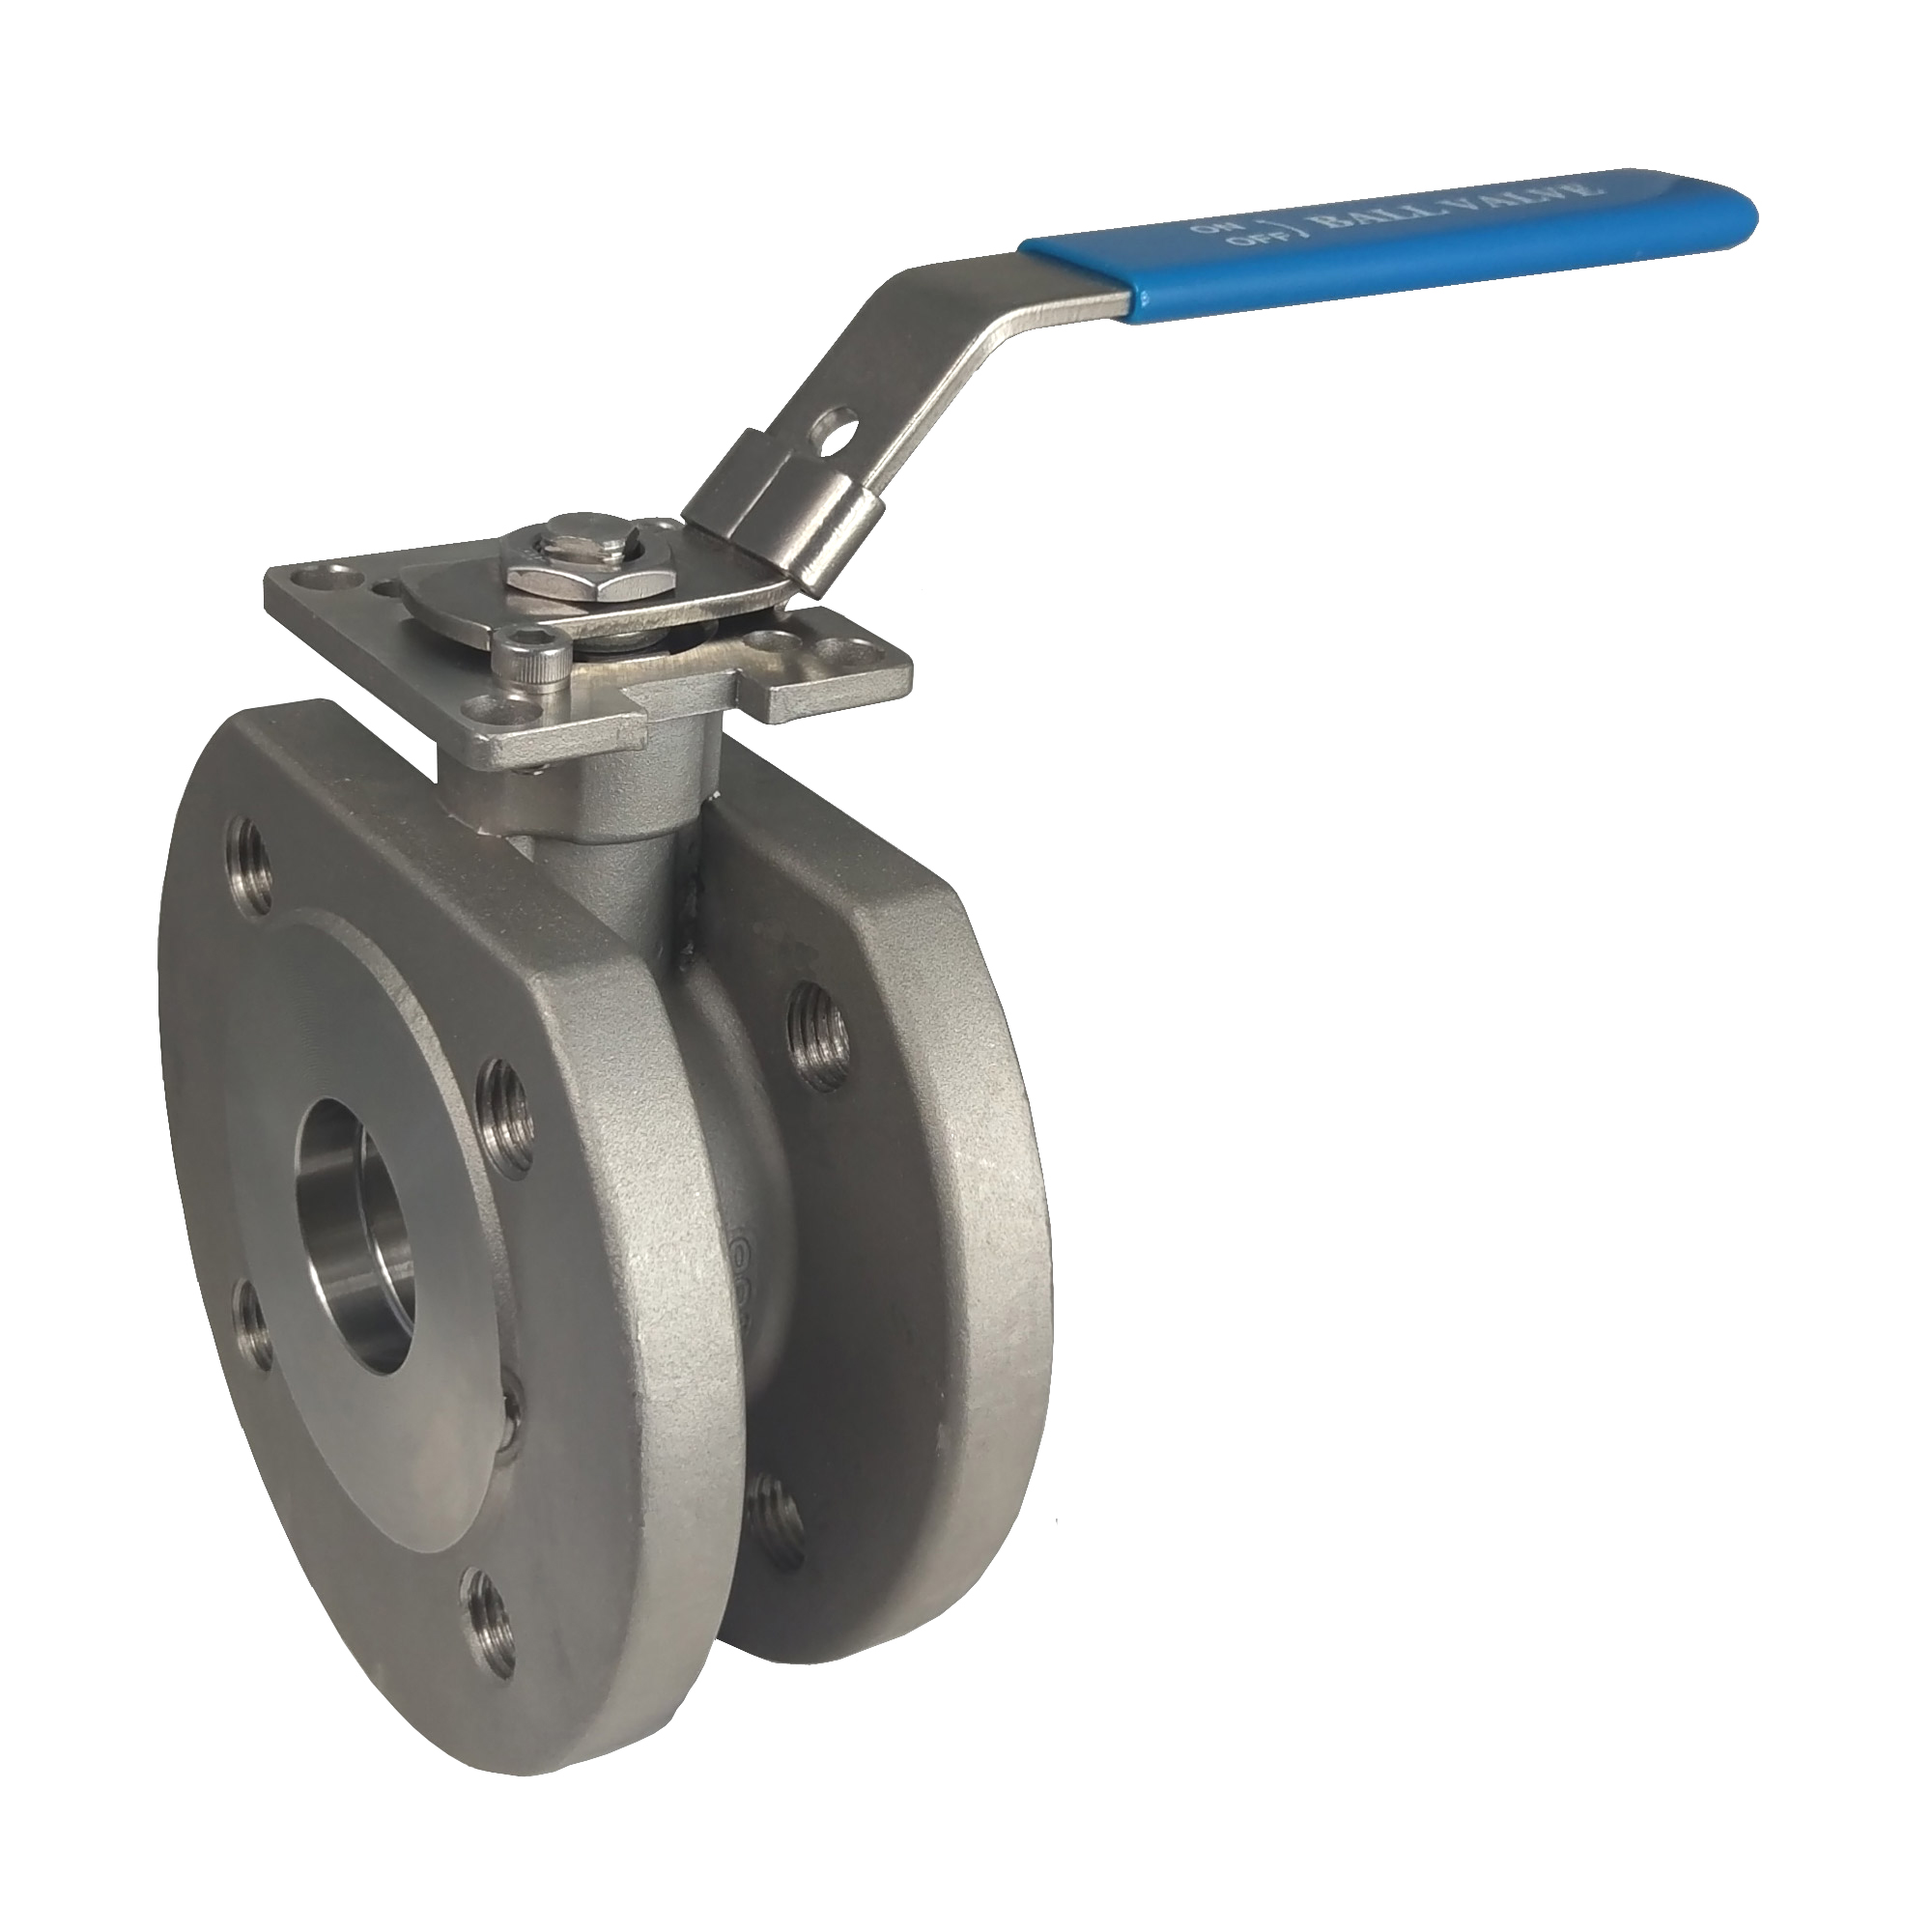 FLANGE END WAFER TYPE BALL VALVE PN16 PN40 150LB - Lung Yun Casting Co., Ltd.